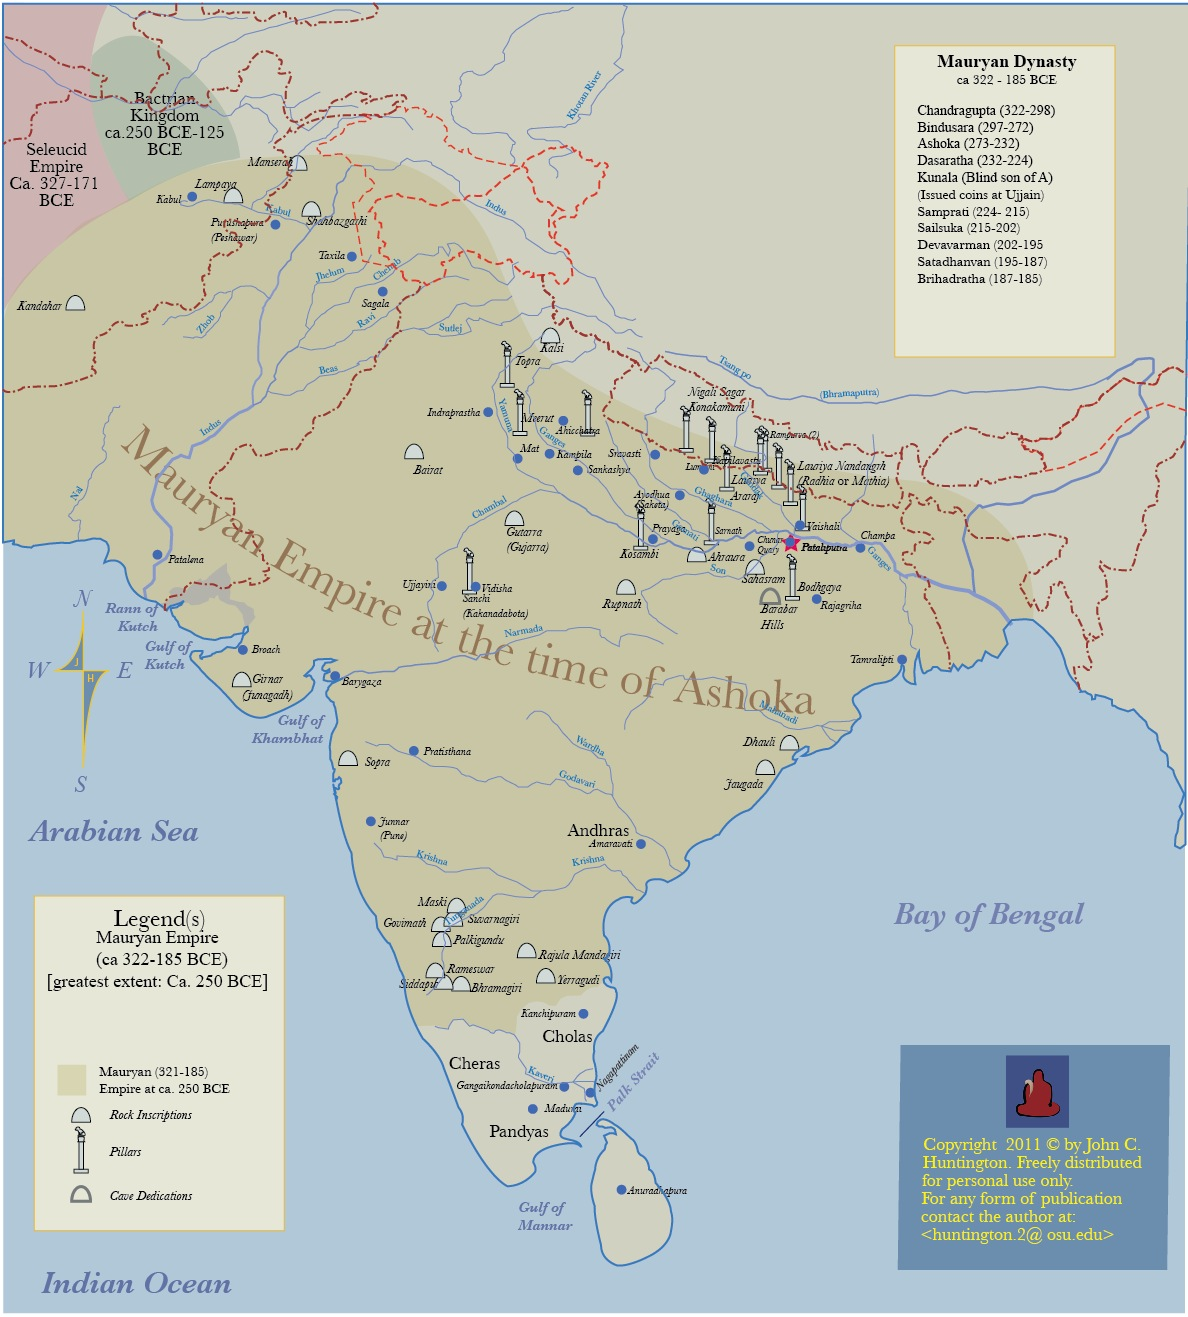 Map Of Asia Resources.Historical Maps Of Asia By John C Huntington